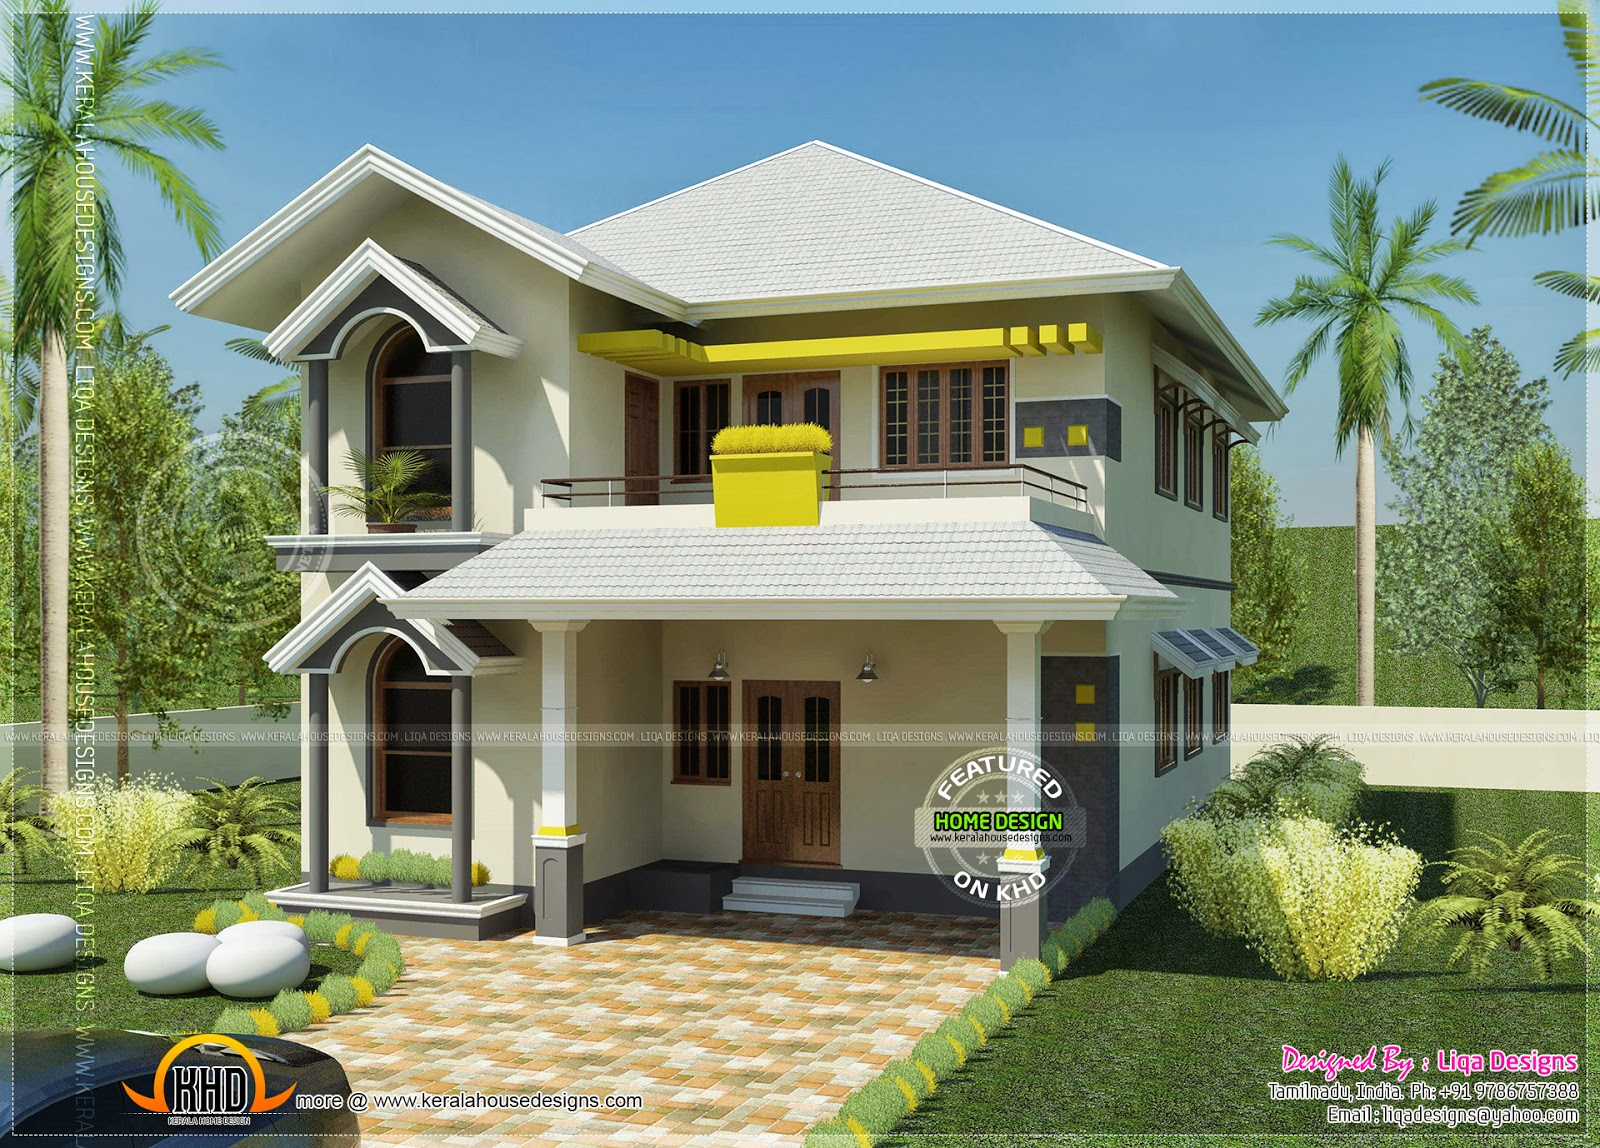 Kerala home design siddu buzz Indian home design